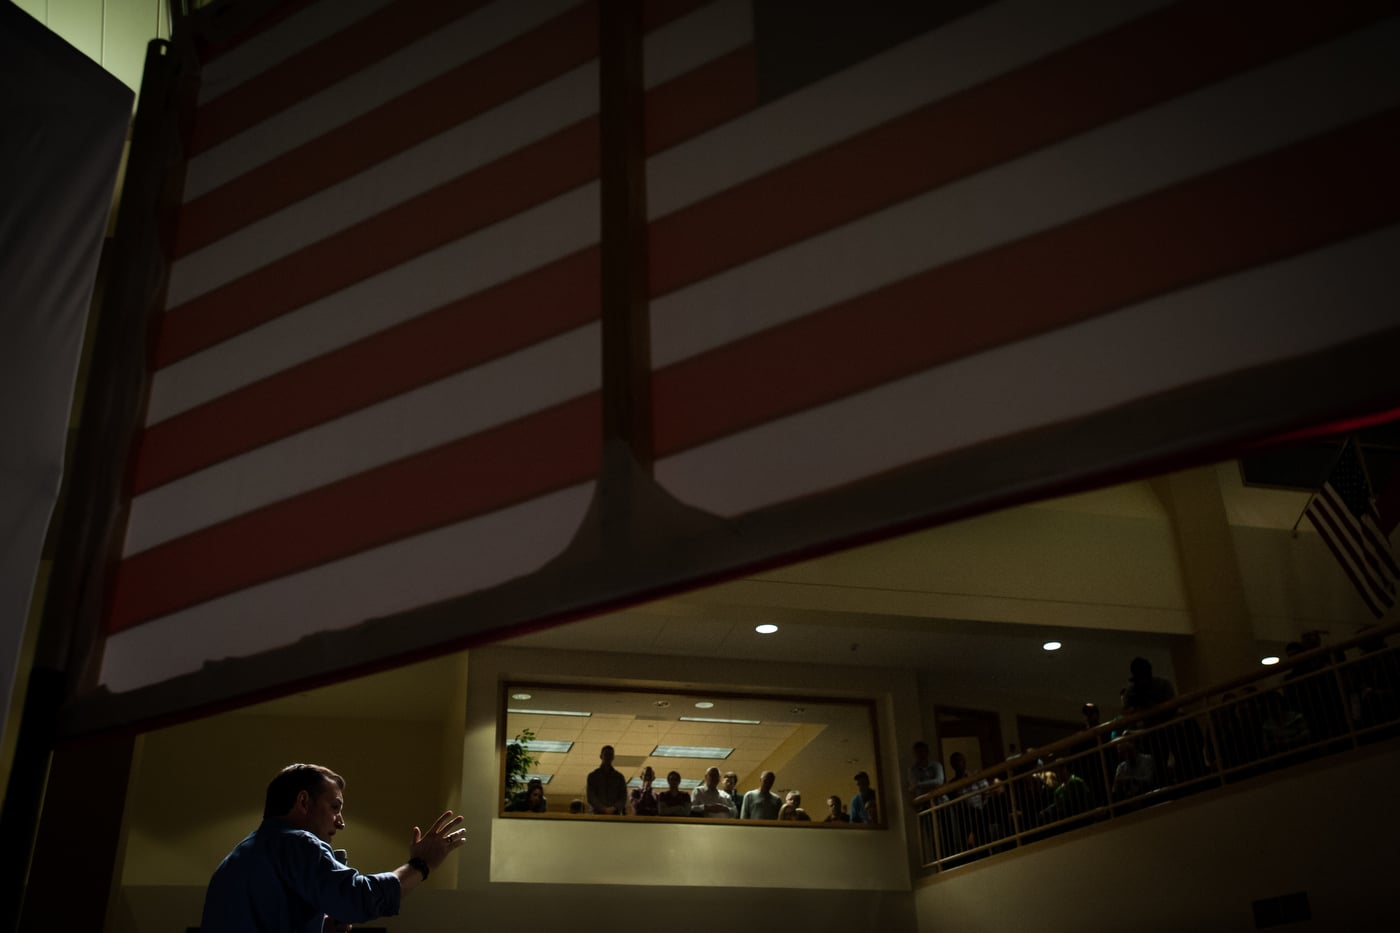 U.S. Republican presidential candidate Ted Cruz speaks at a campaign stop Dordt College in Sioux Center, Iowa January 5, 2016. The stop is a part of Cruz' six-day bus tour through Iowa. REUTERS/Mark Kauzlarich